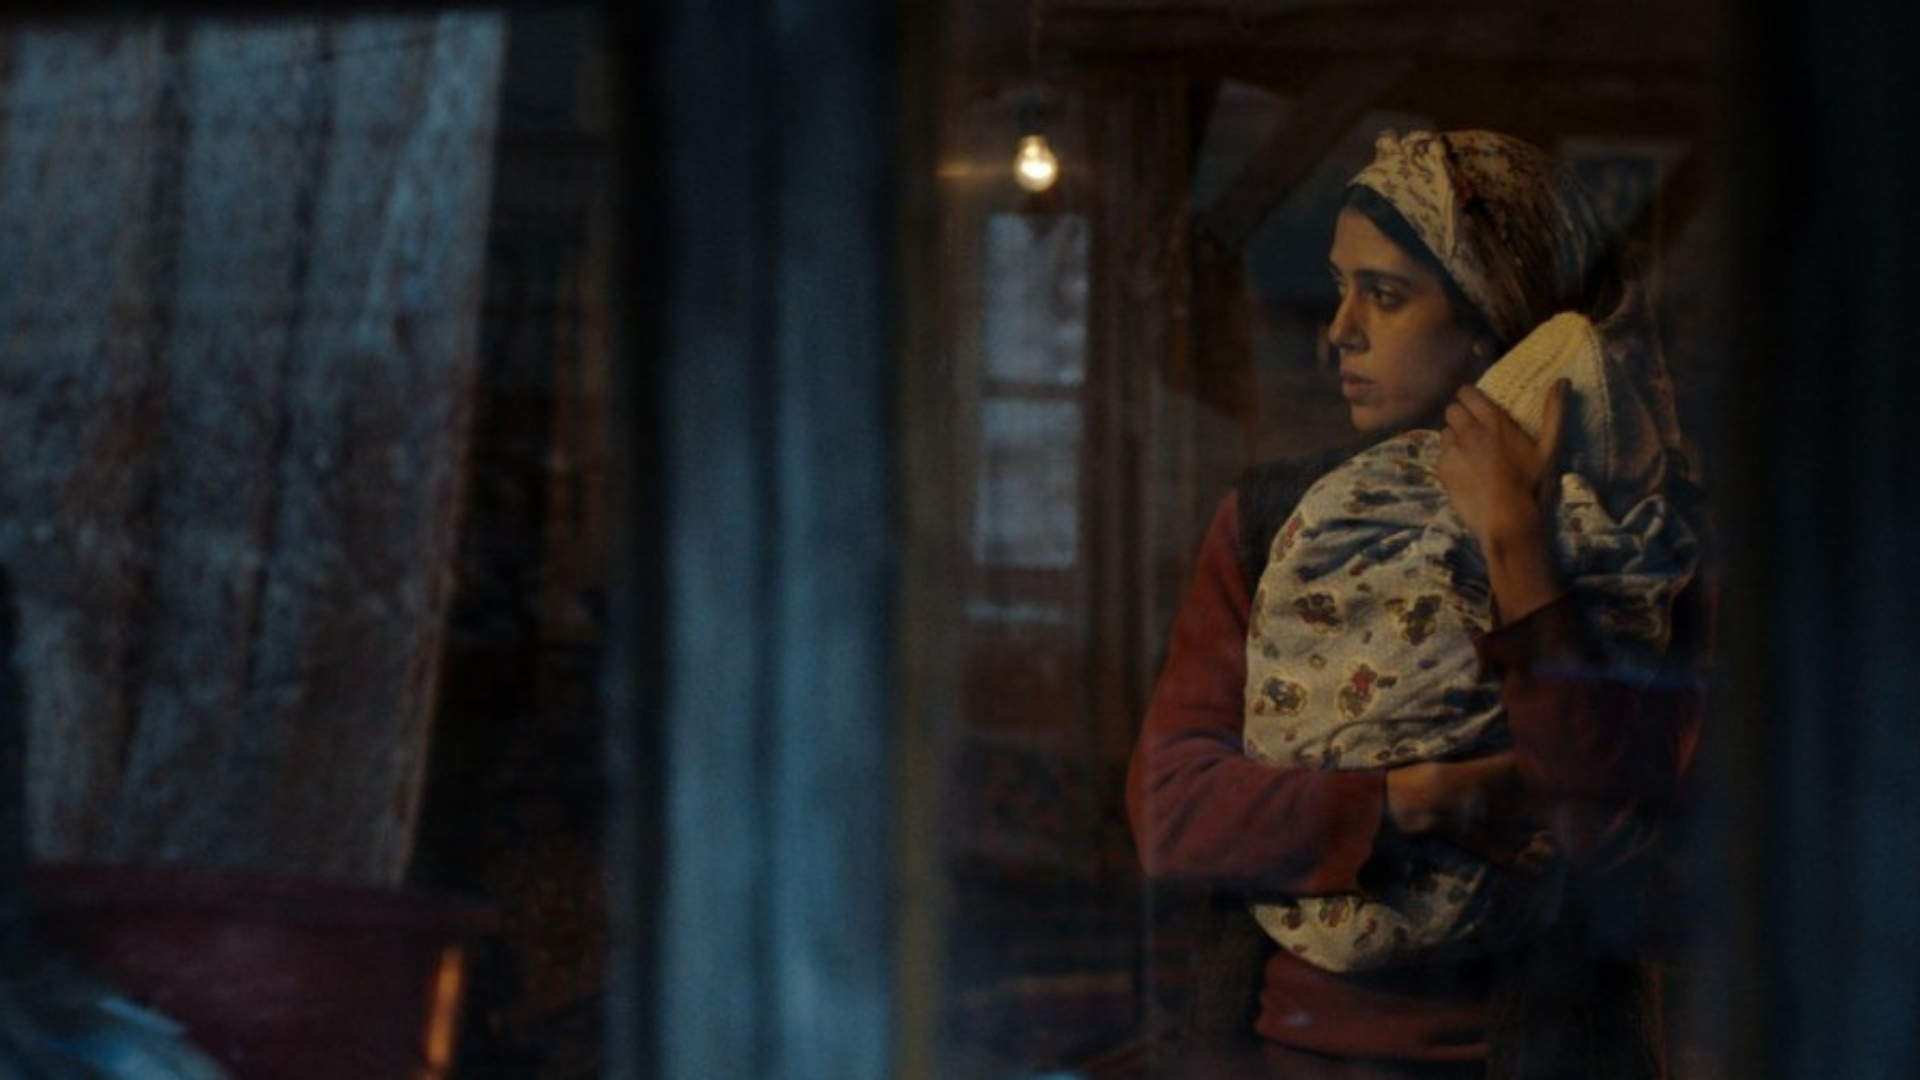 Berlinale 2019: Emin Alper's A Tale of Three Sisters (Co-production Market and Pitching Forum|MIA 2016) in competition